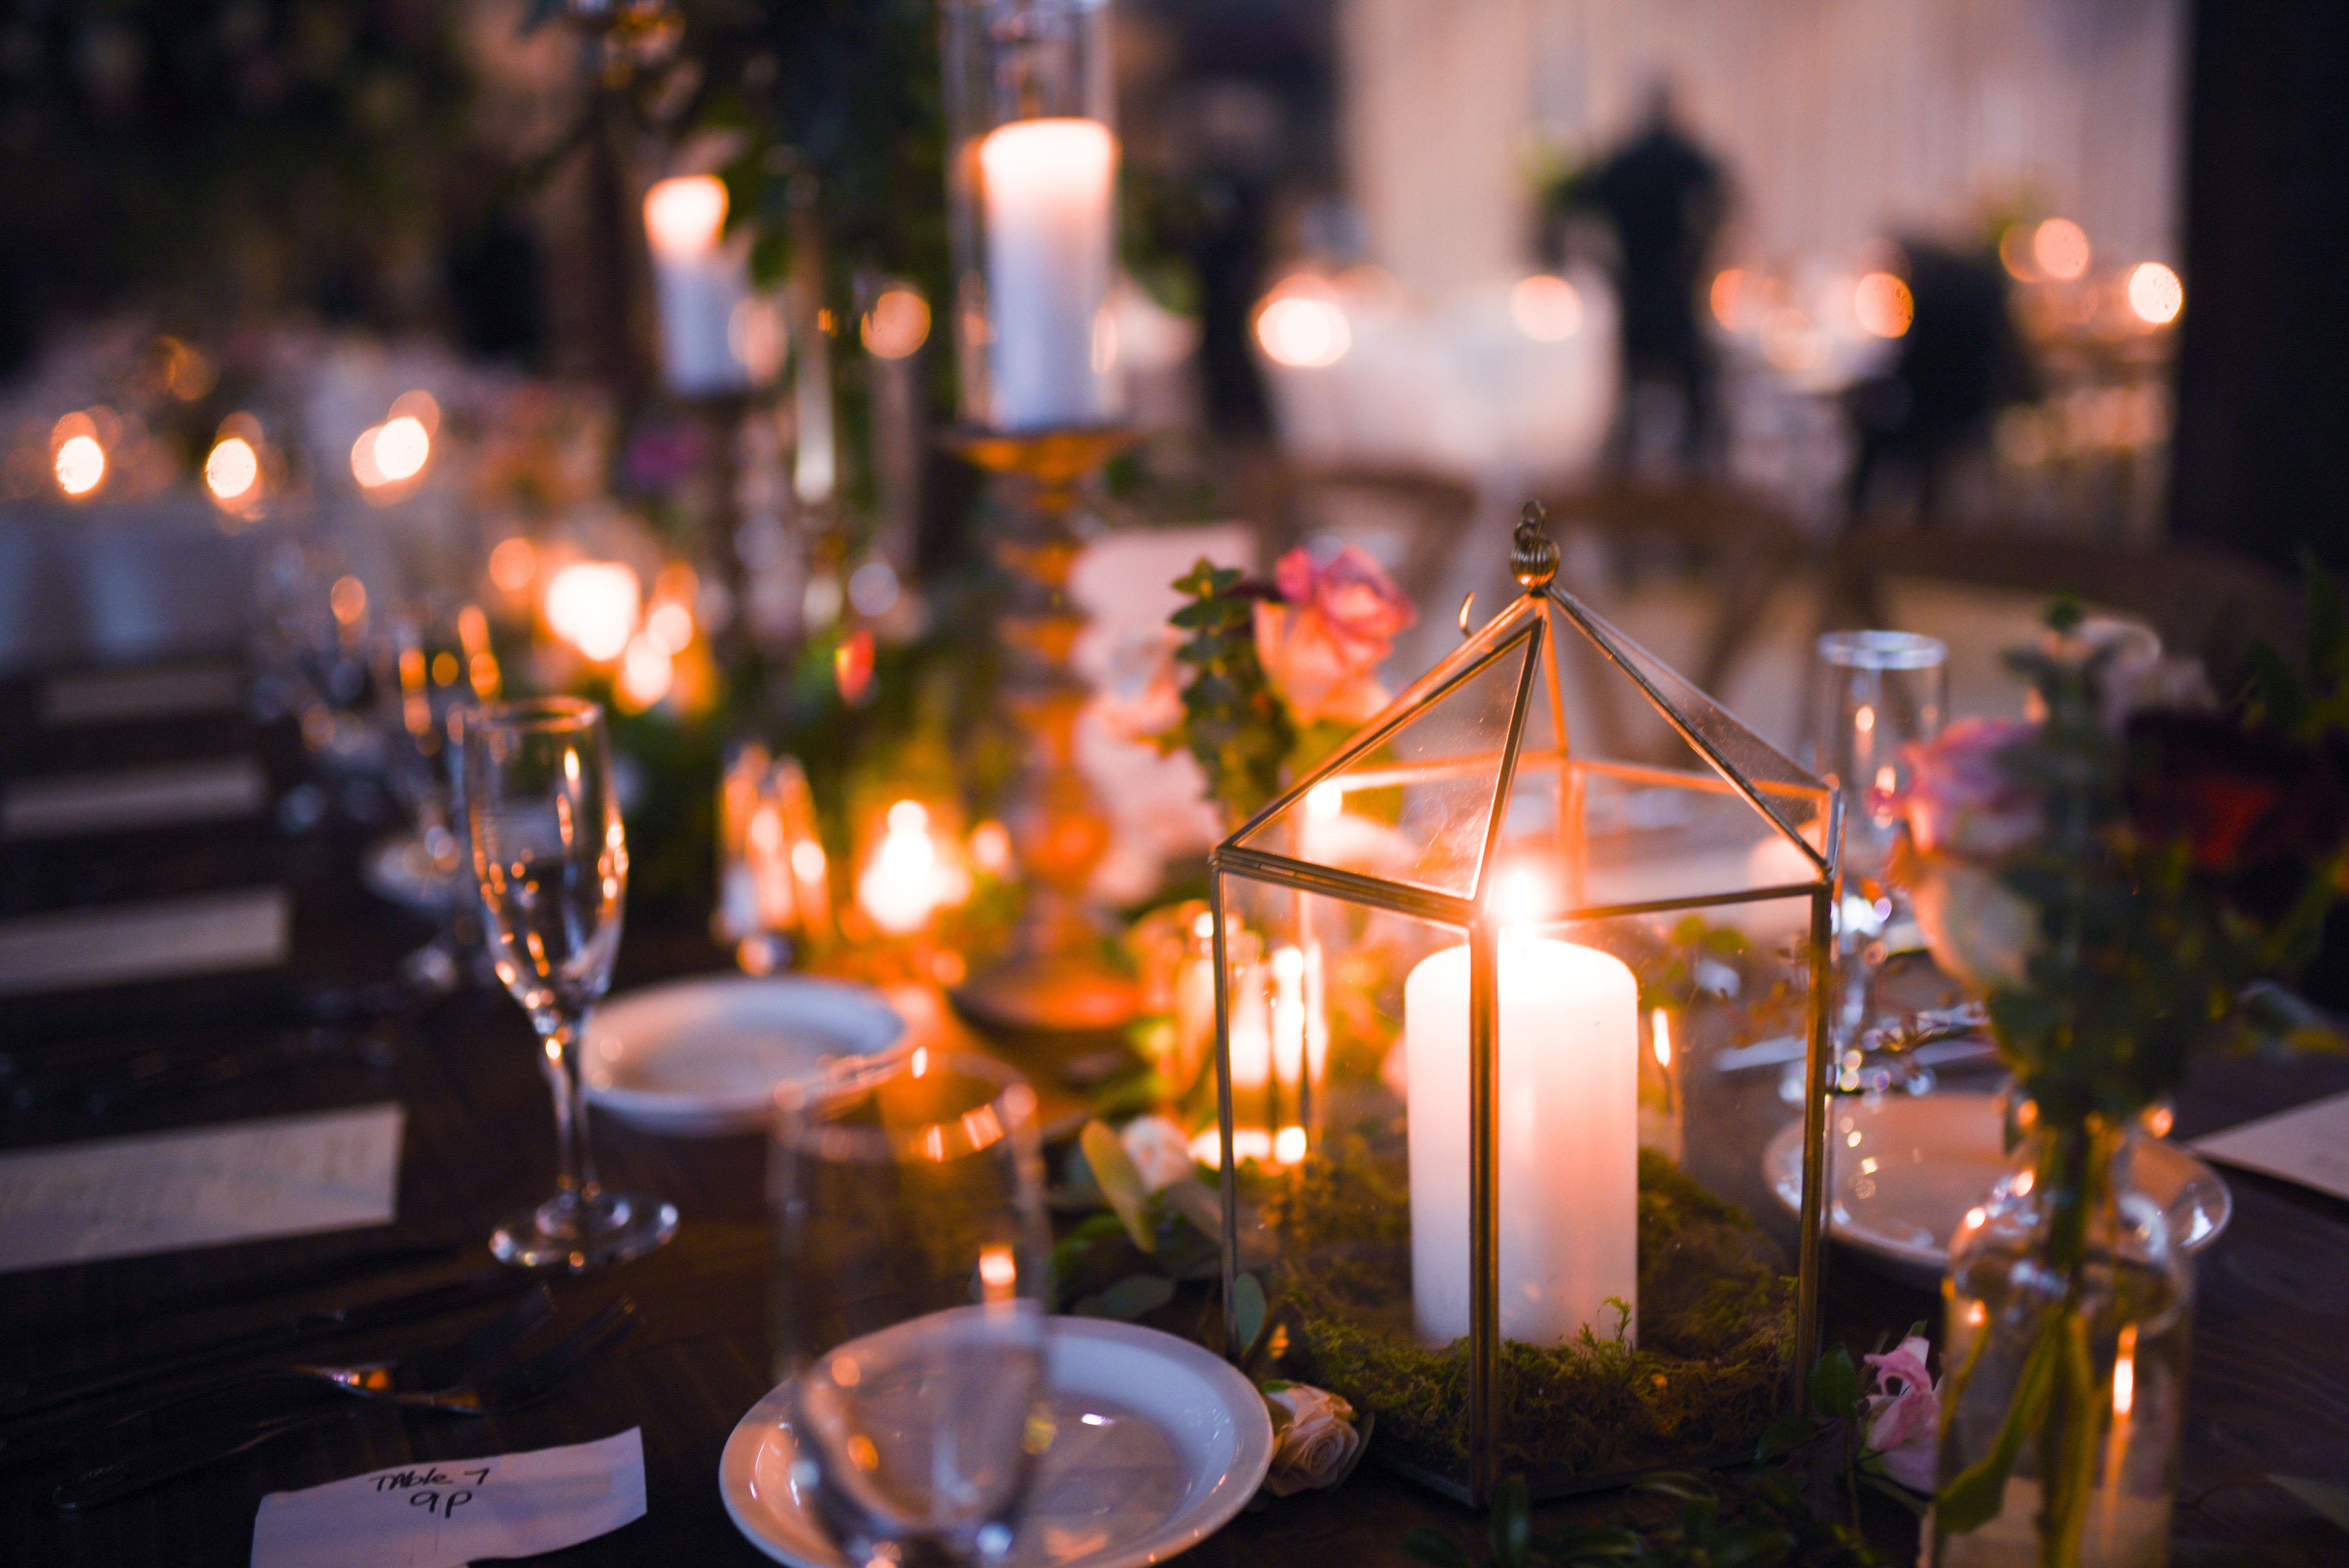 Candelabras Lanterns Pillar Candles And Lots Of Gorgeous Blooms Tall Centerpieces Chalice Centerpieces Hanging C Pillar Candles Tall Centerpieces Lanterns